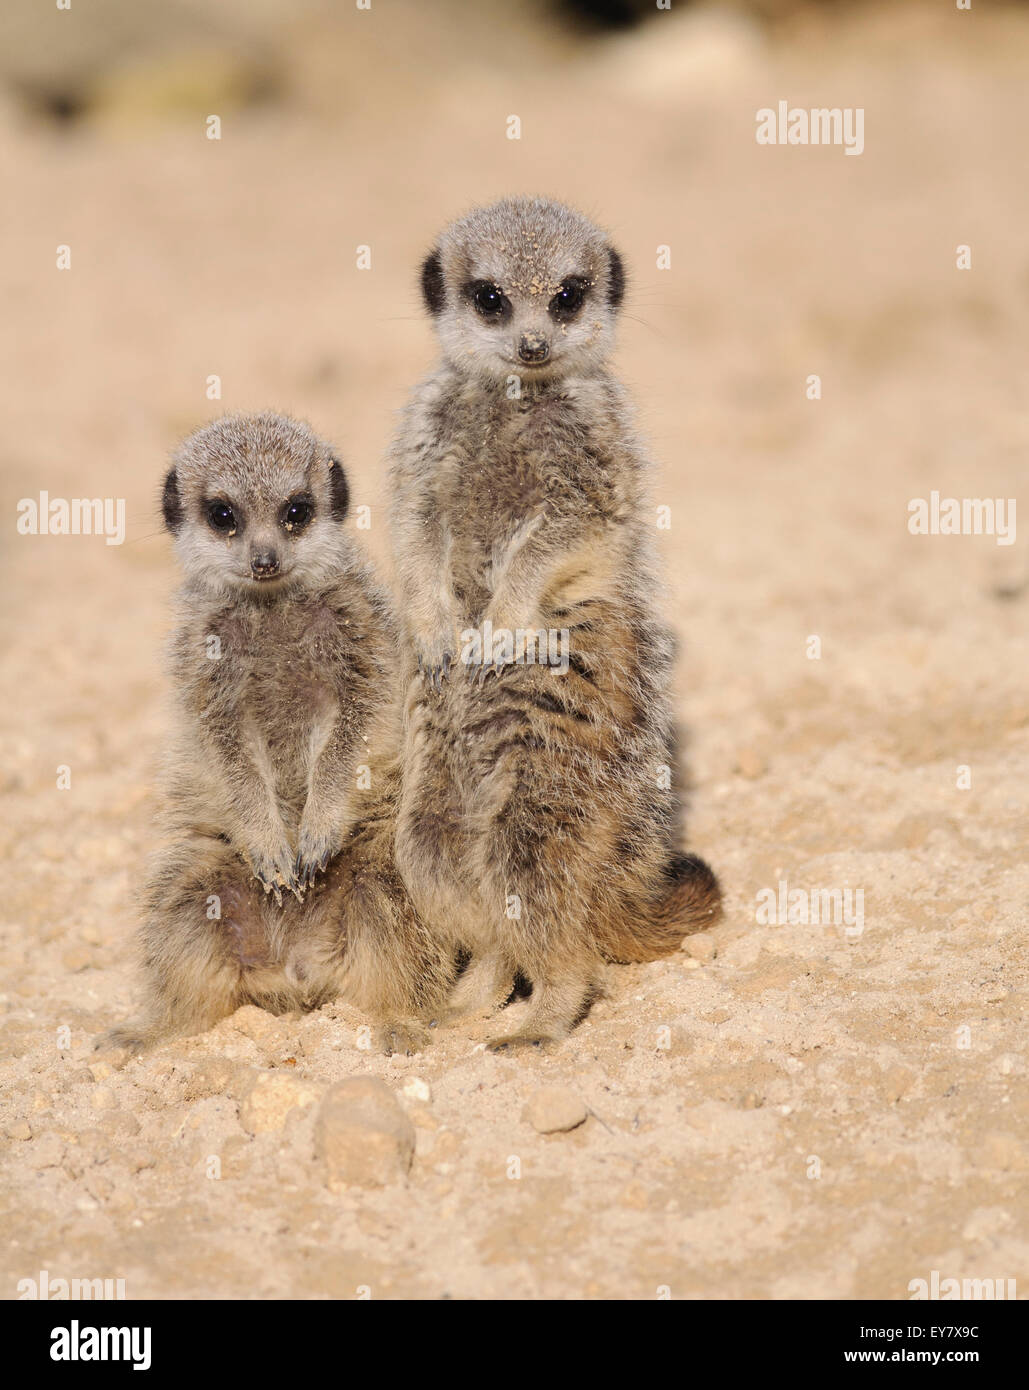 Two young meerkats / suricates (suricata suricatta), looking at the camera. Stock Photo